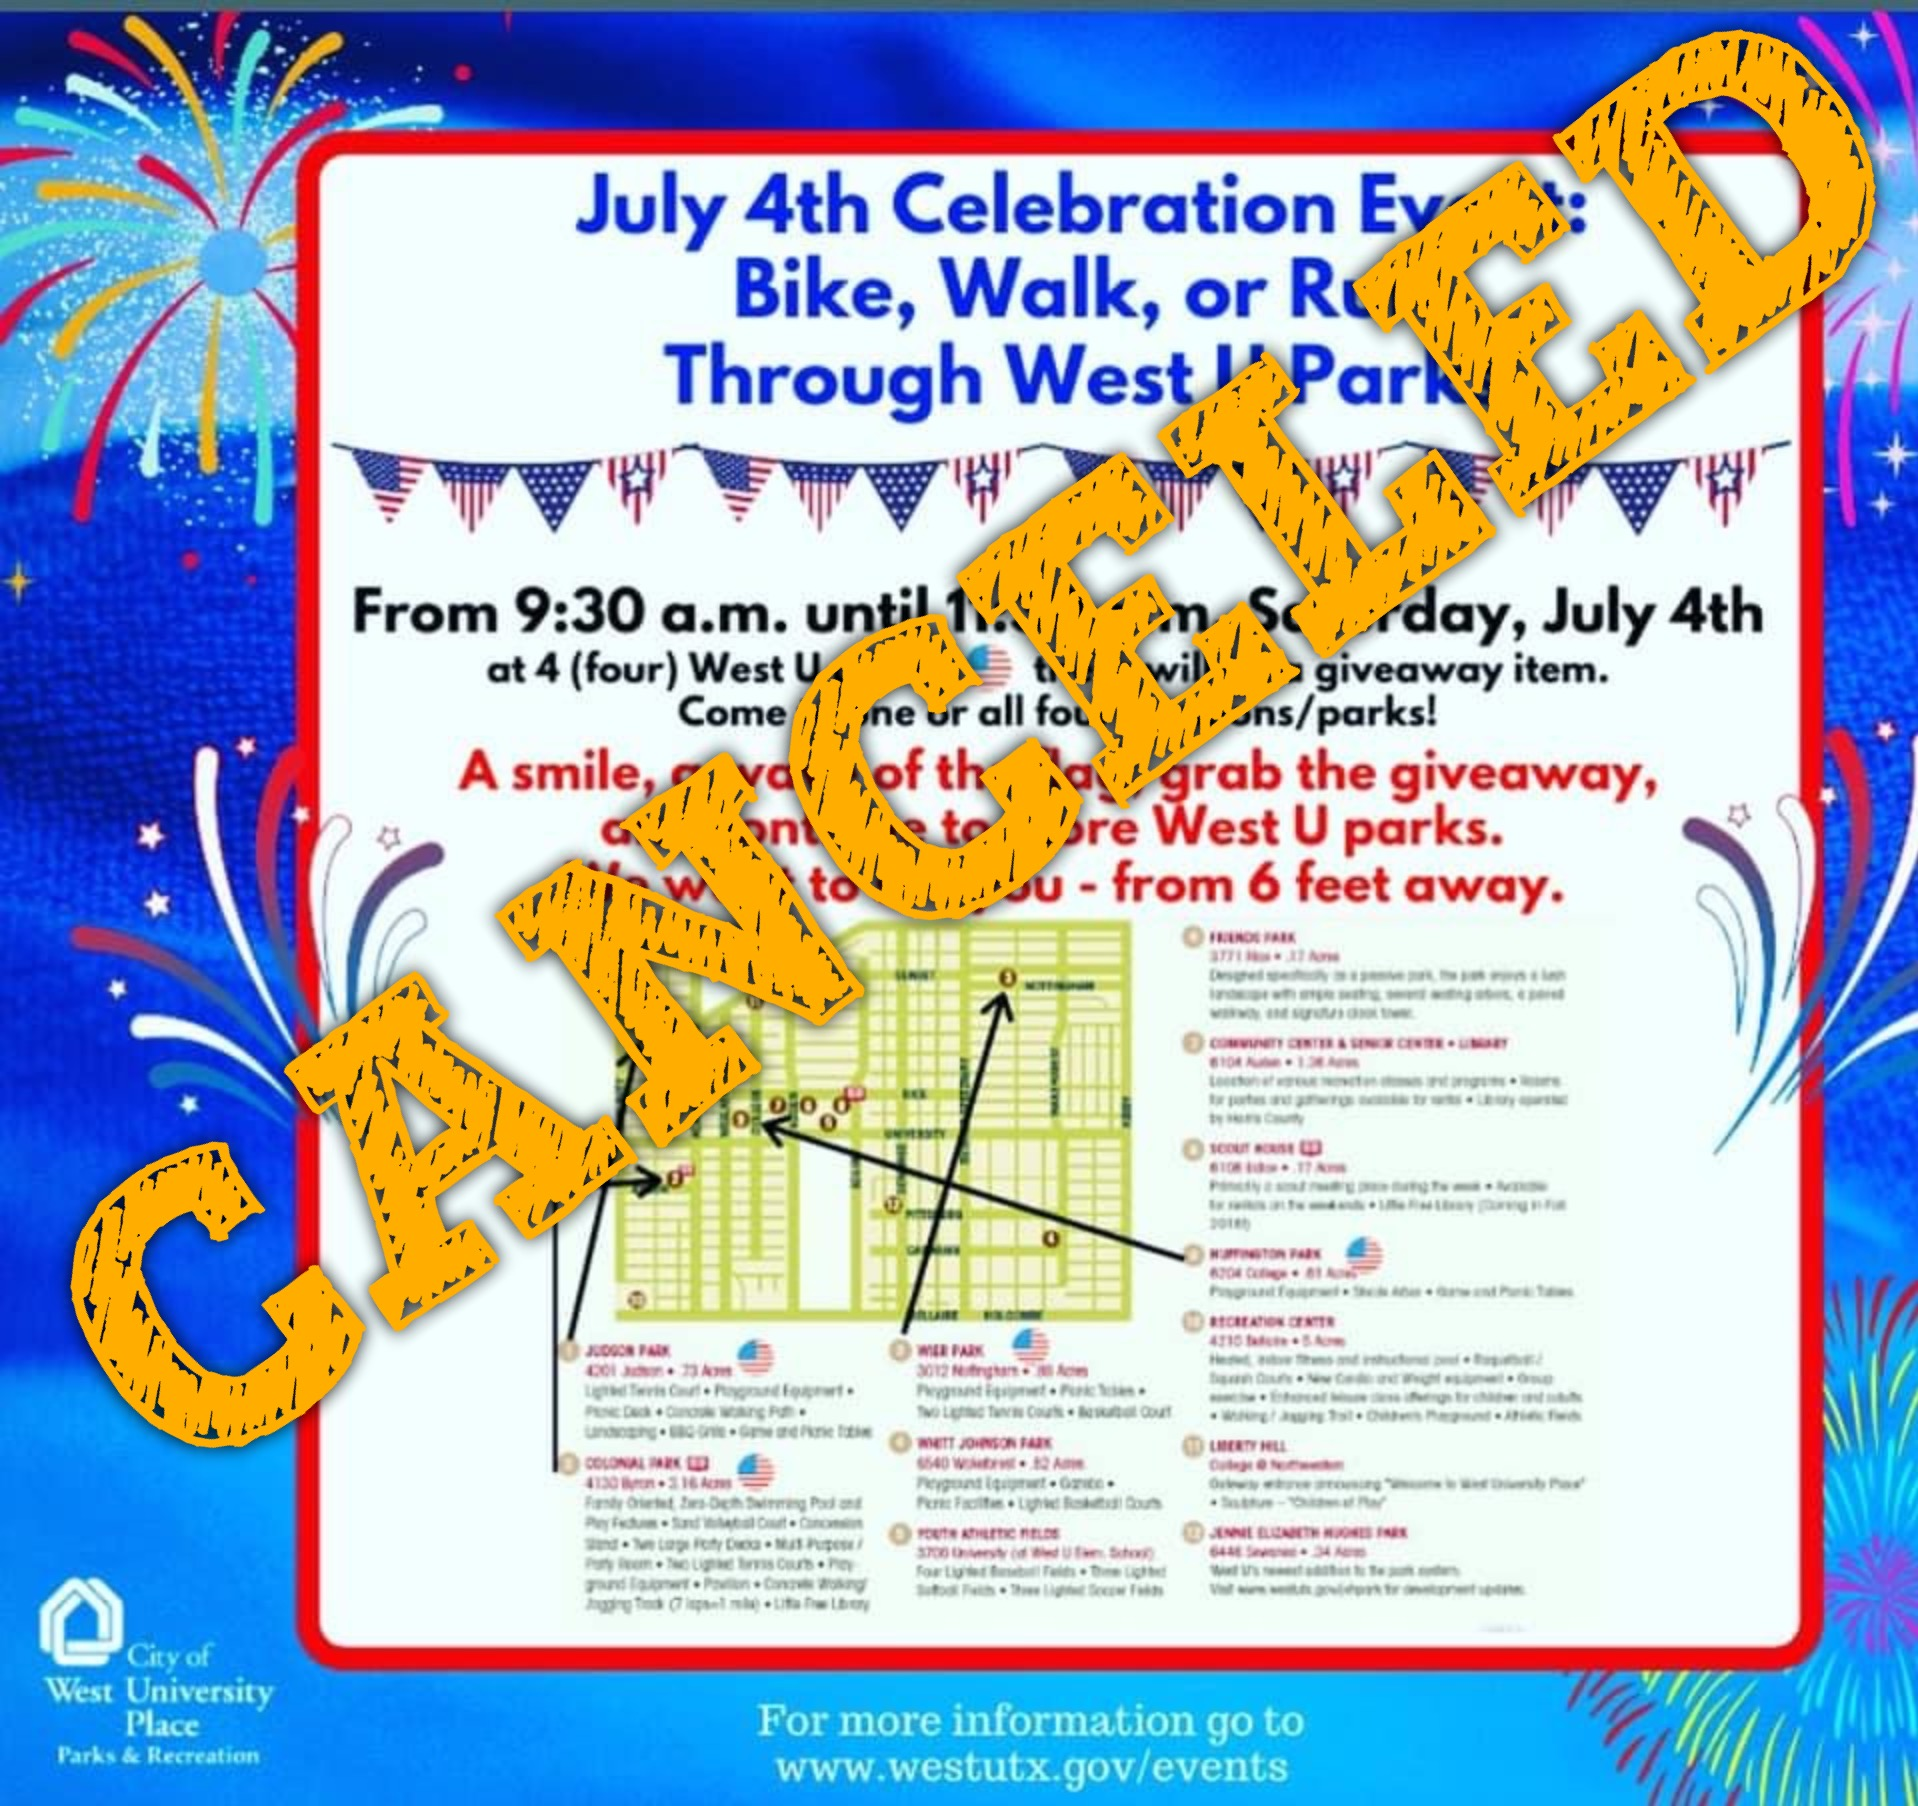 West U cancels Fourth of July event, puts hold on Parks & Rec activities